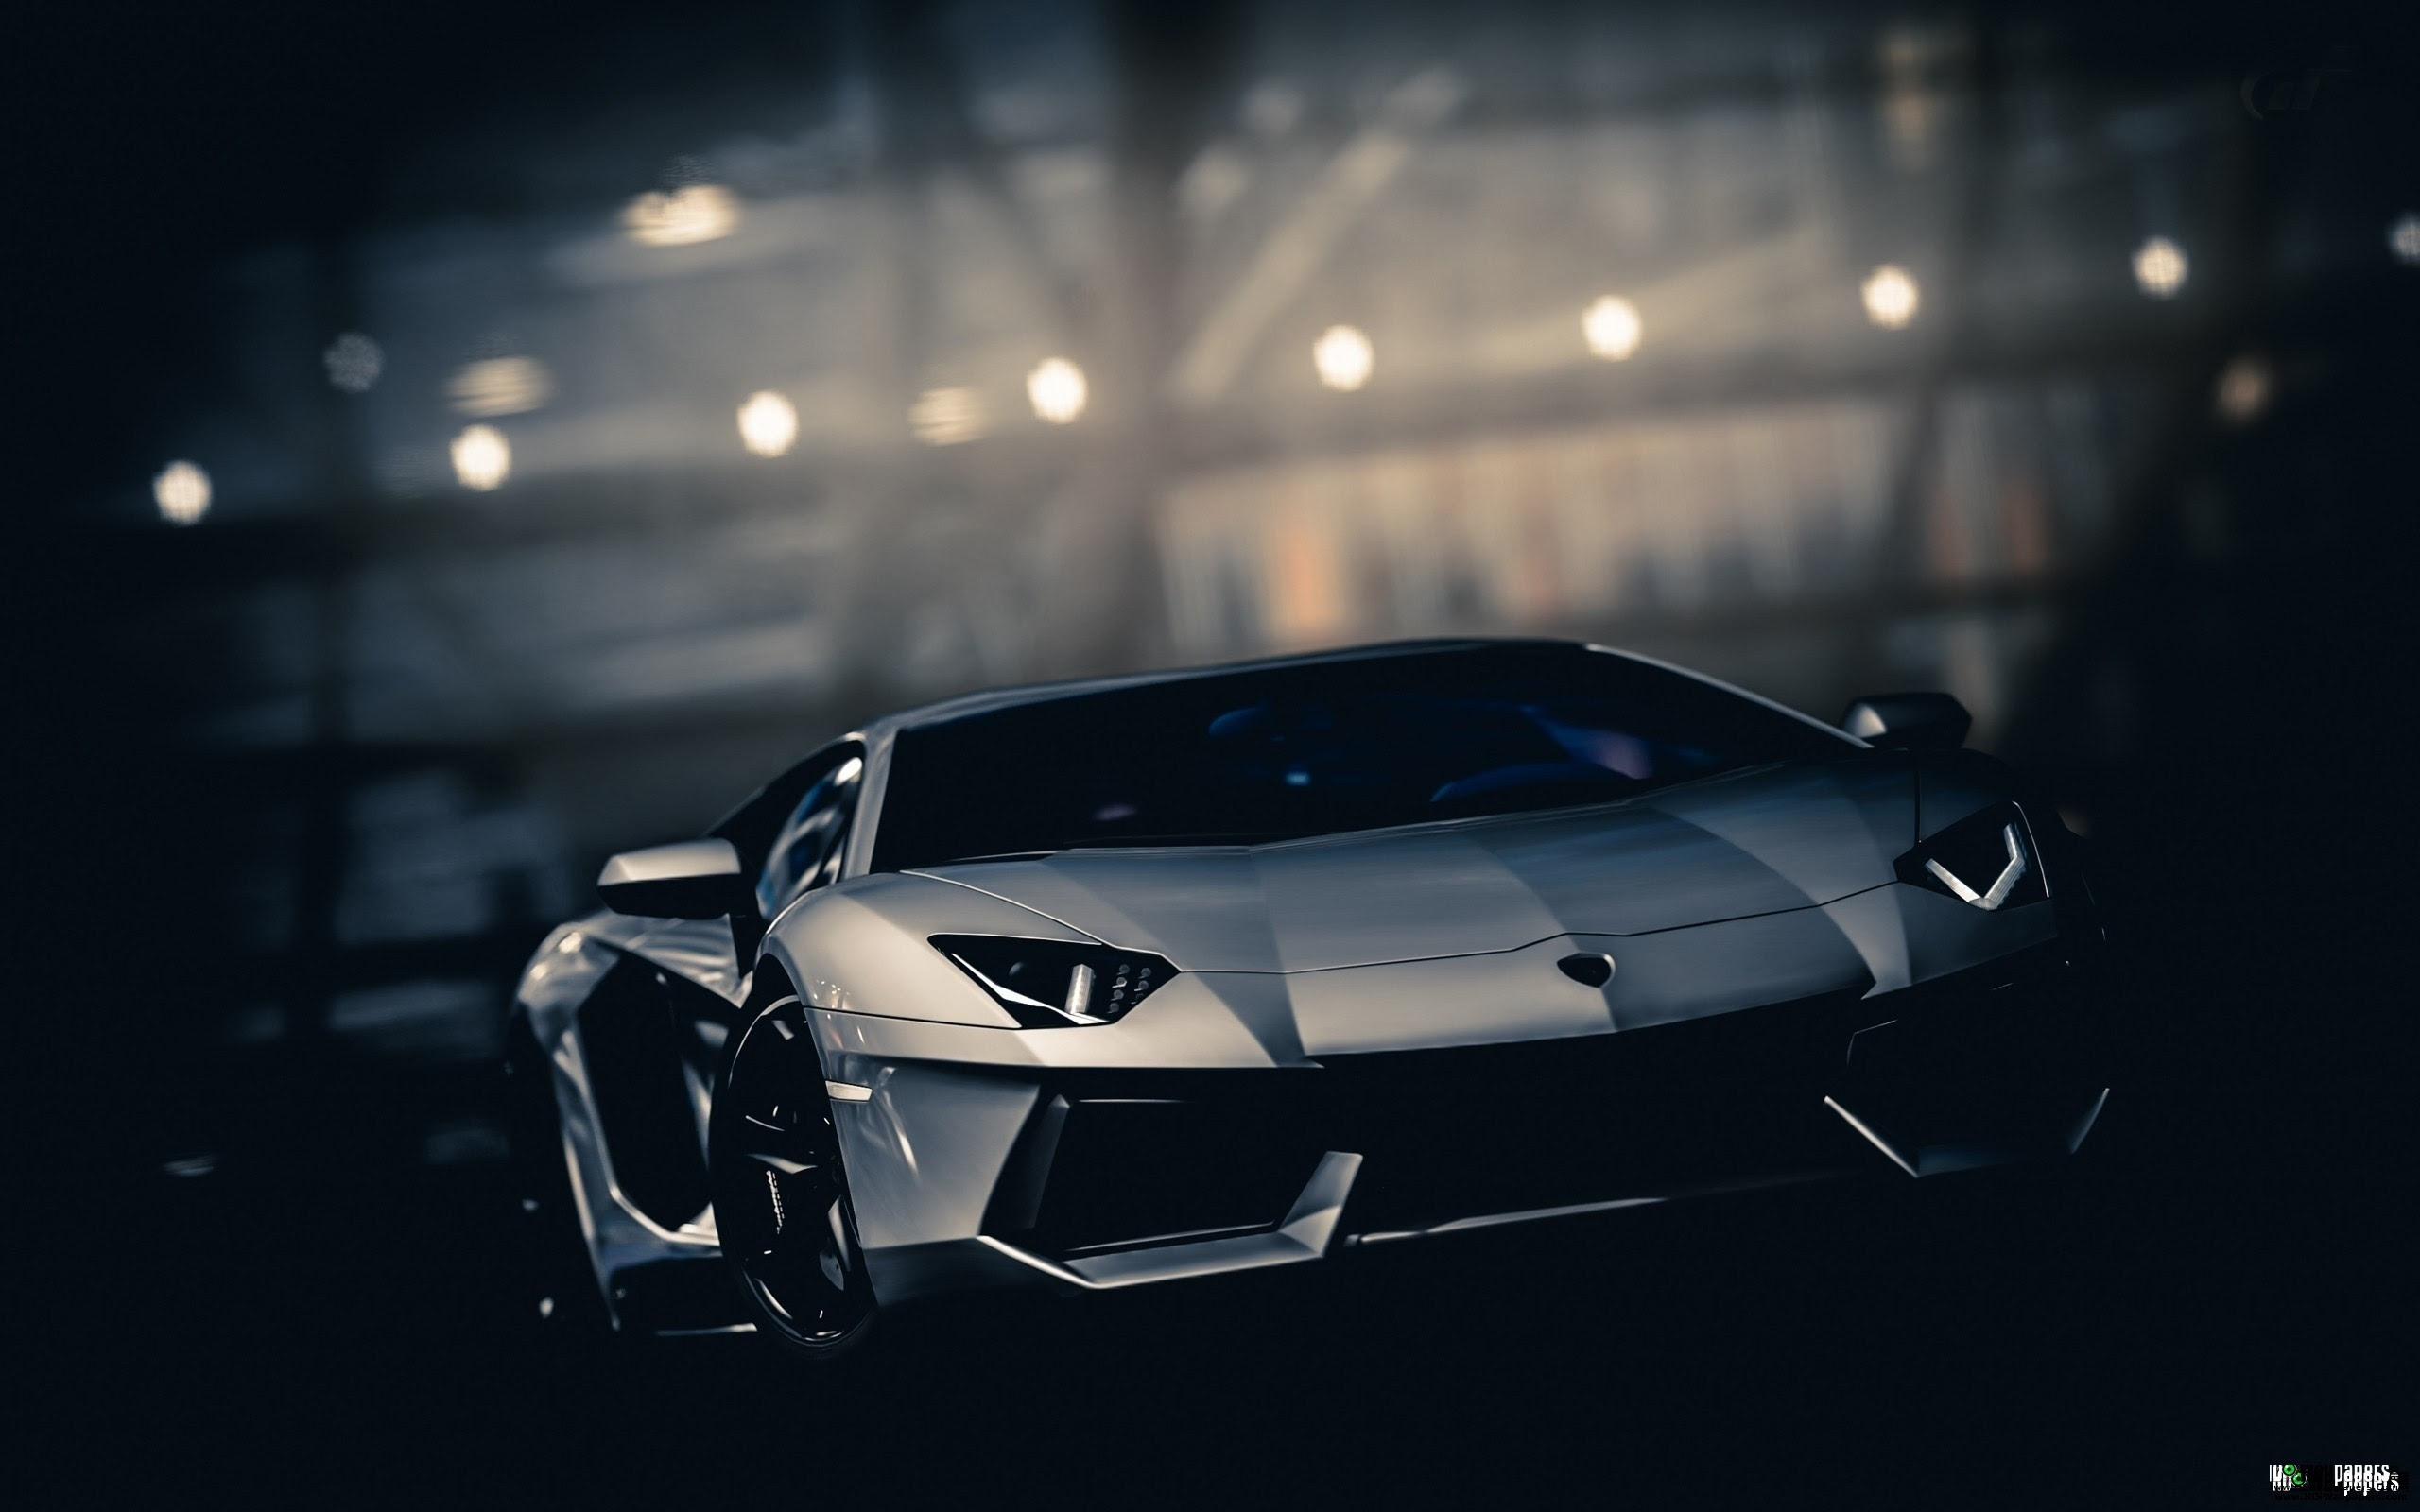 The new pc revolution starts today. Car Wallpaper Hd For Pc Download Picture Idokeren